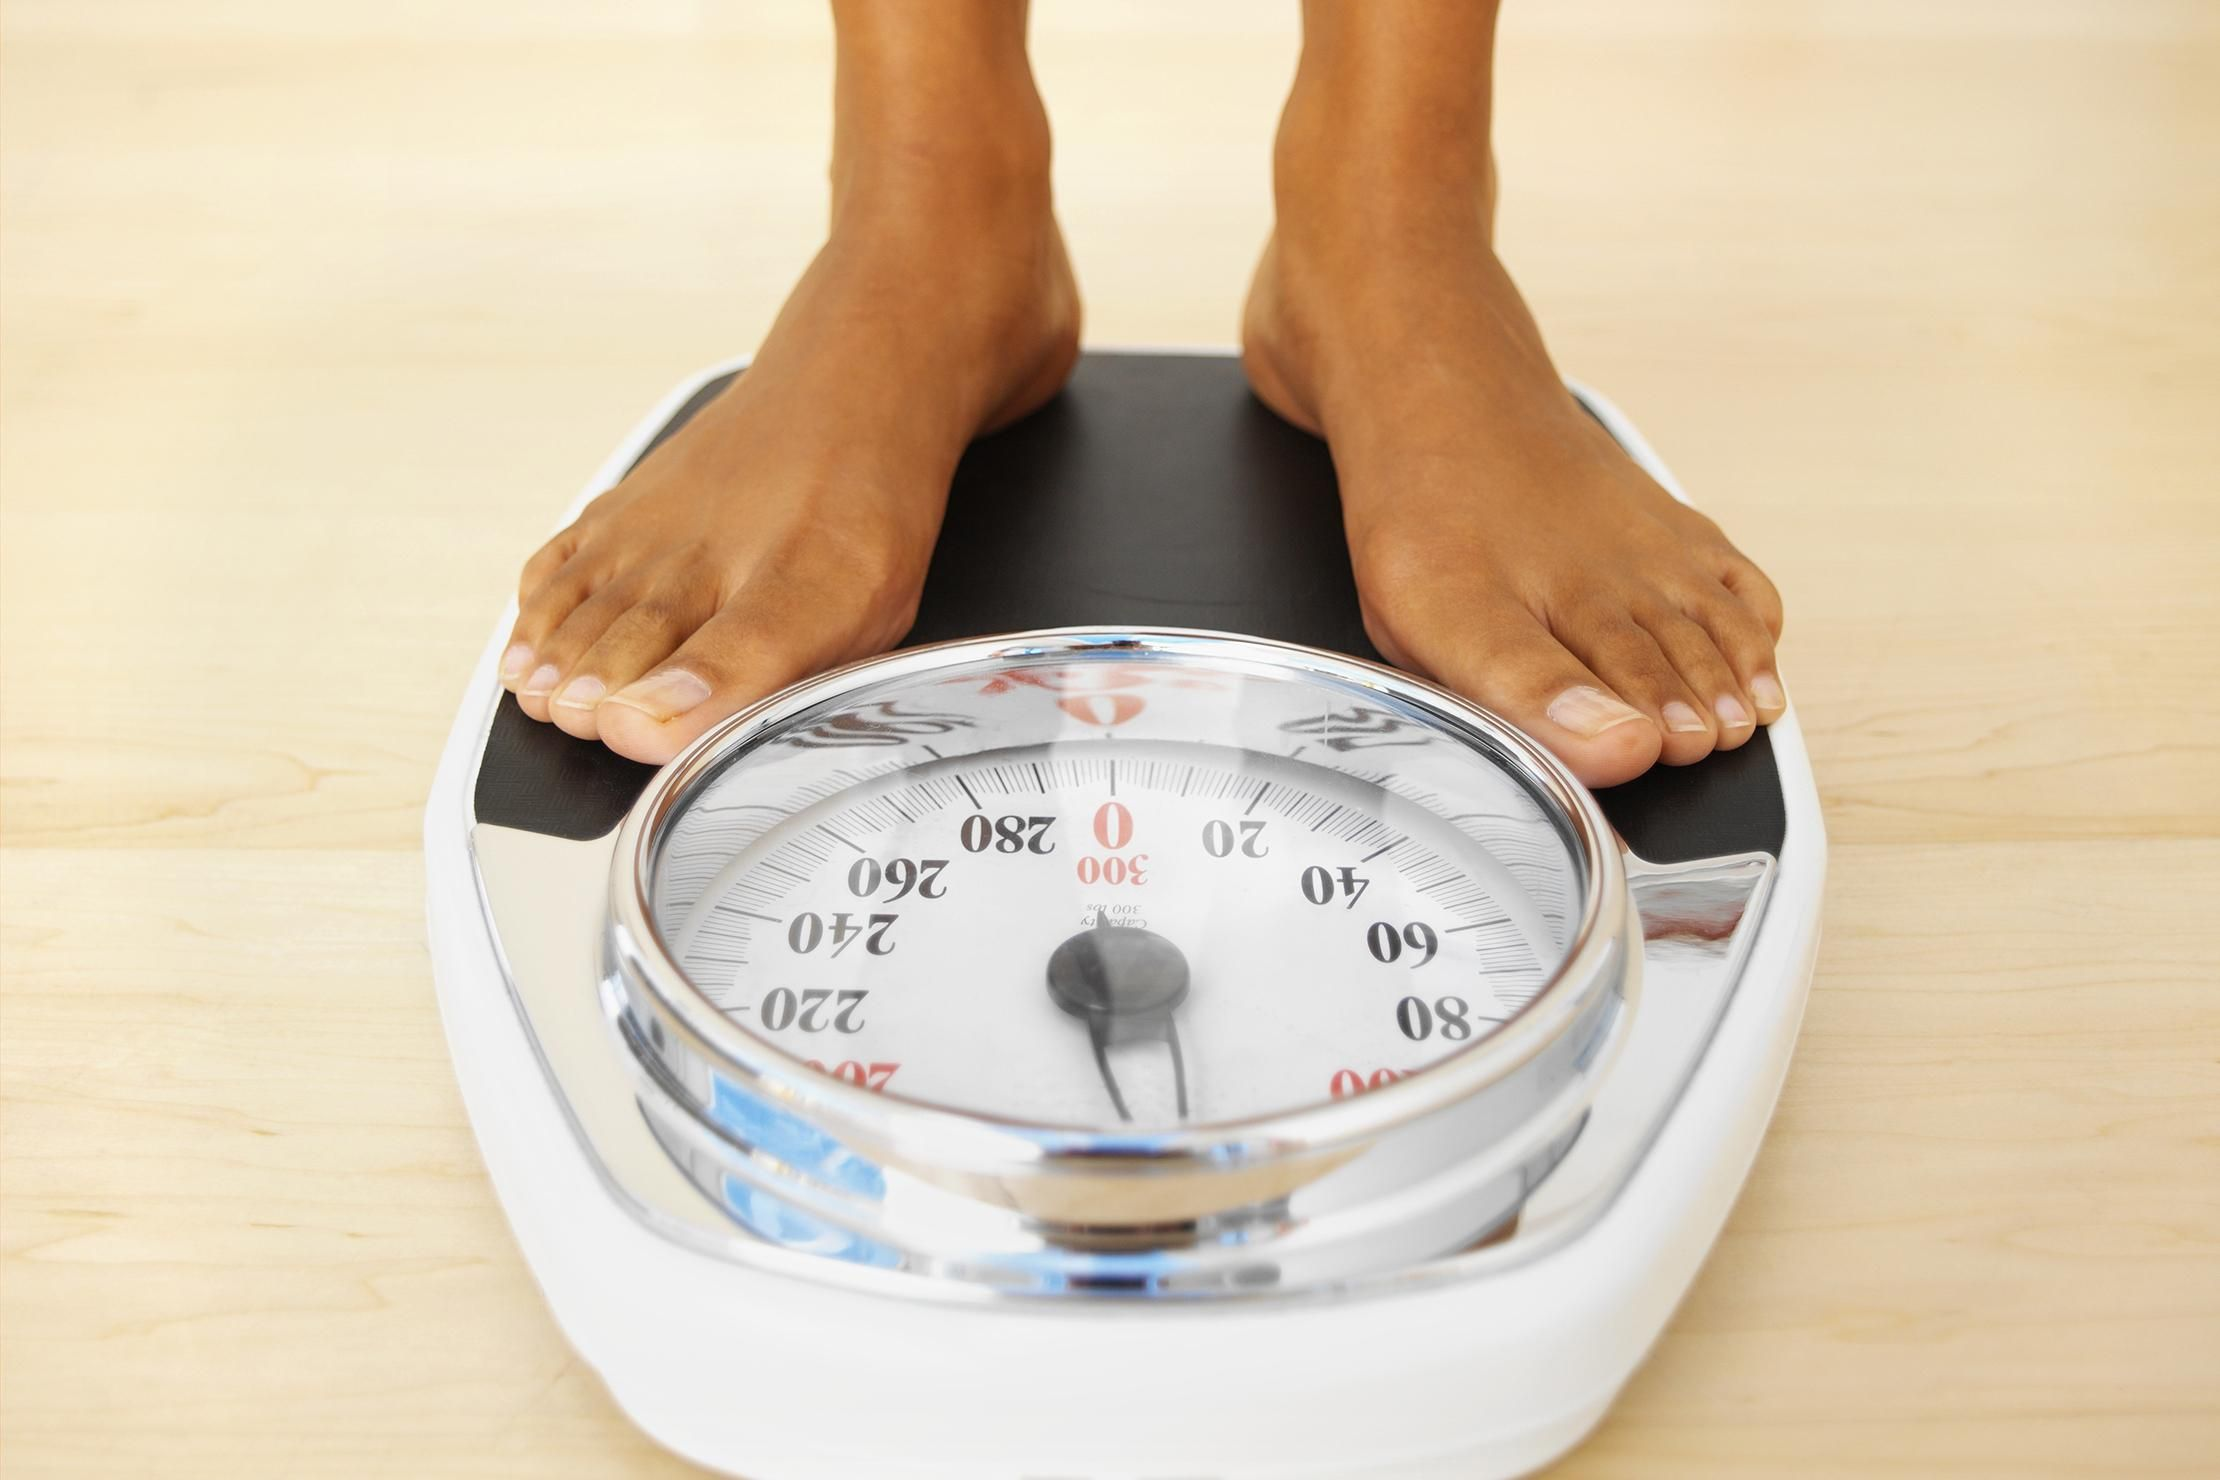 How Much Does an Extra Pound Slow You Down?